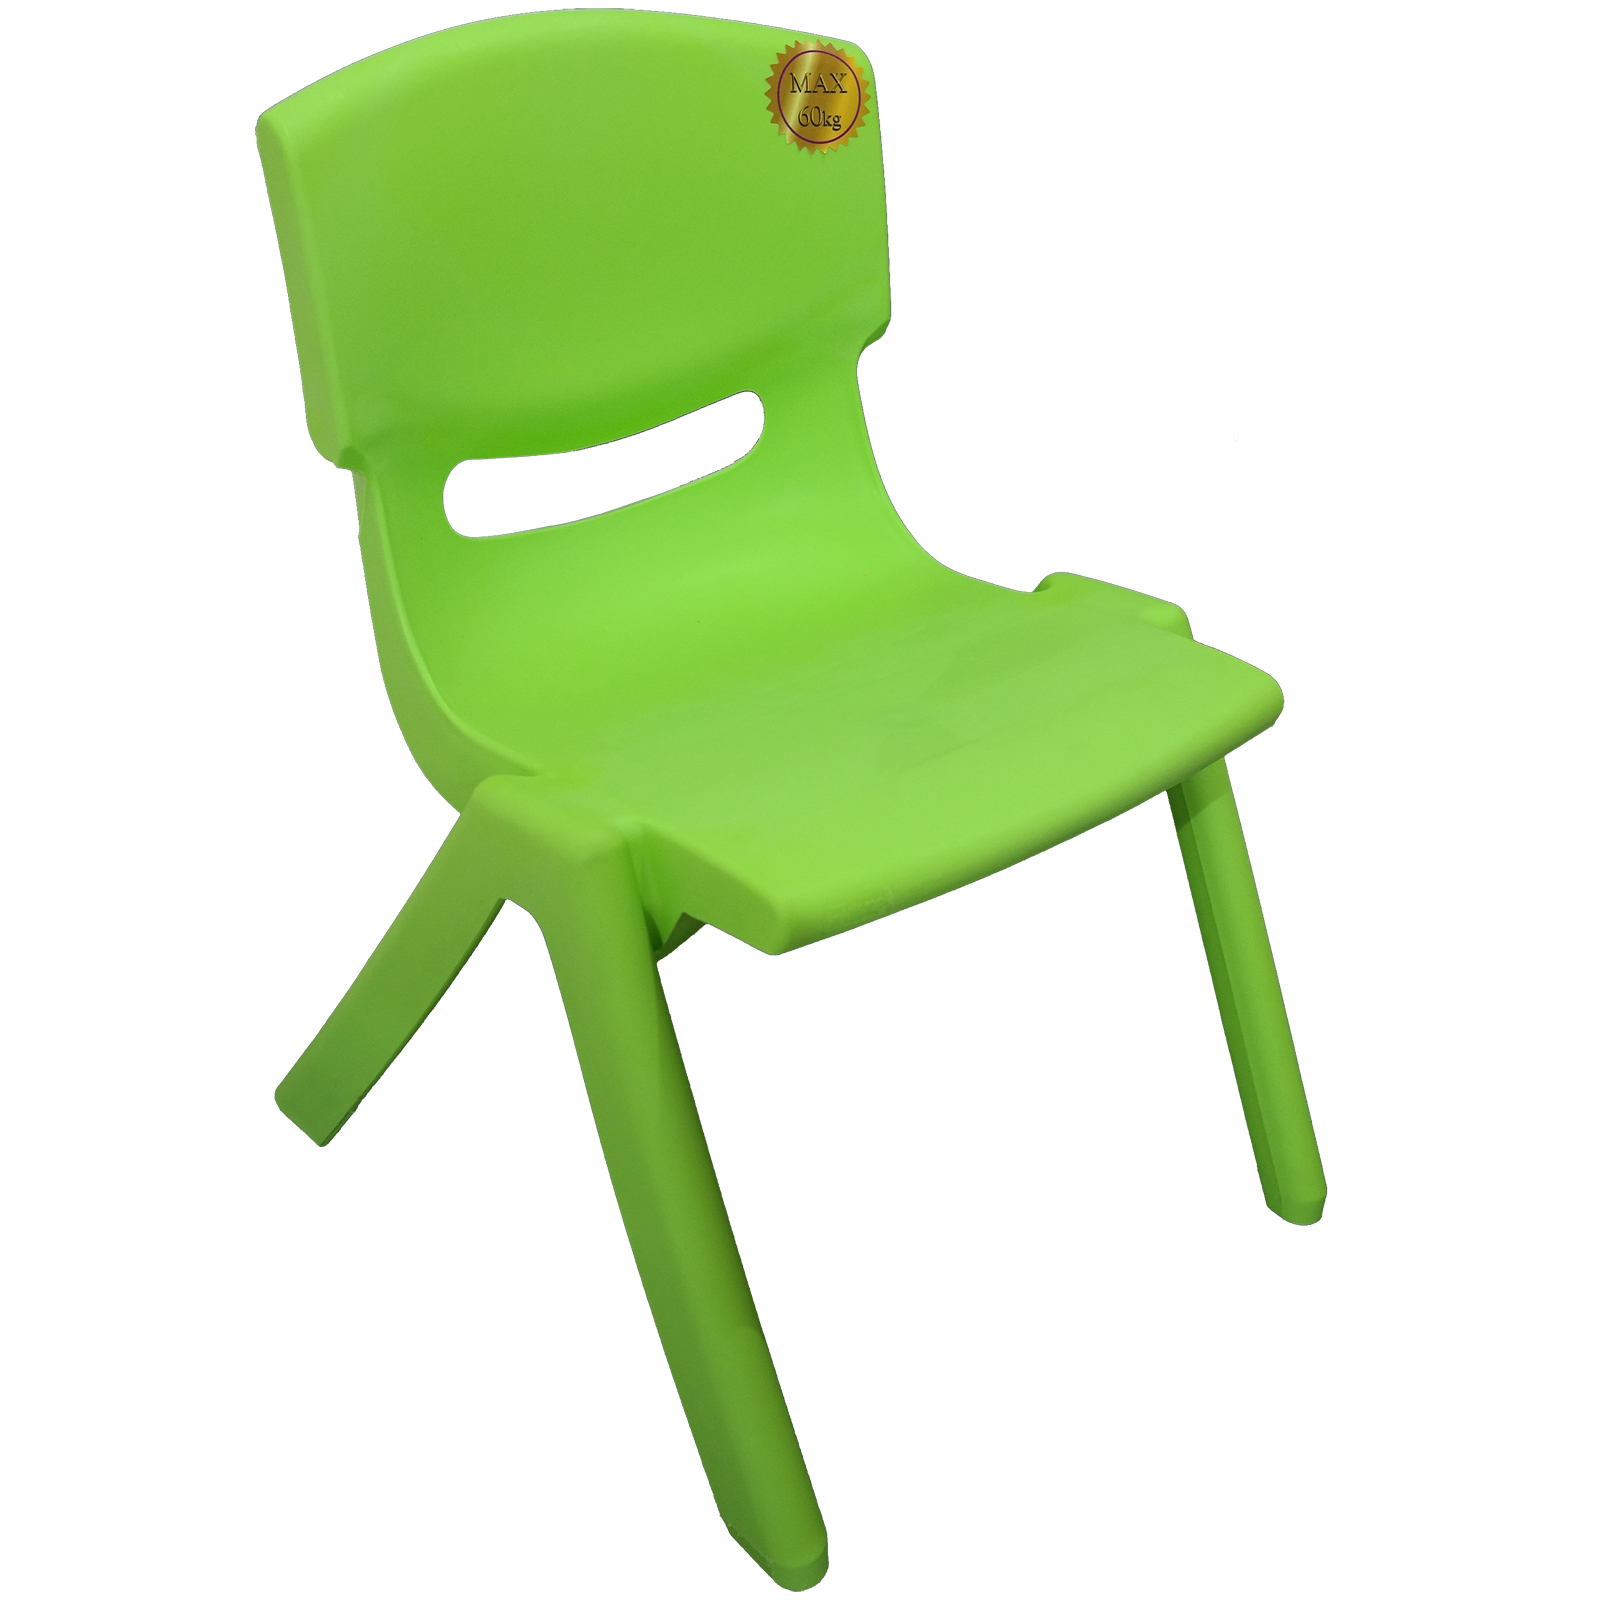 Chair clipart child chair, Chair child chair Transparent ...